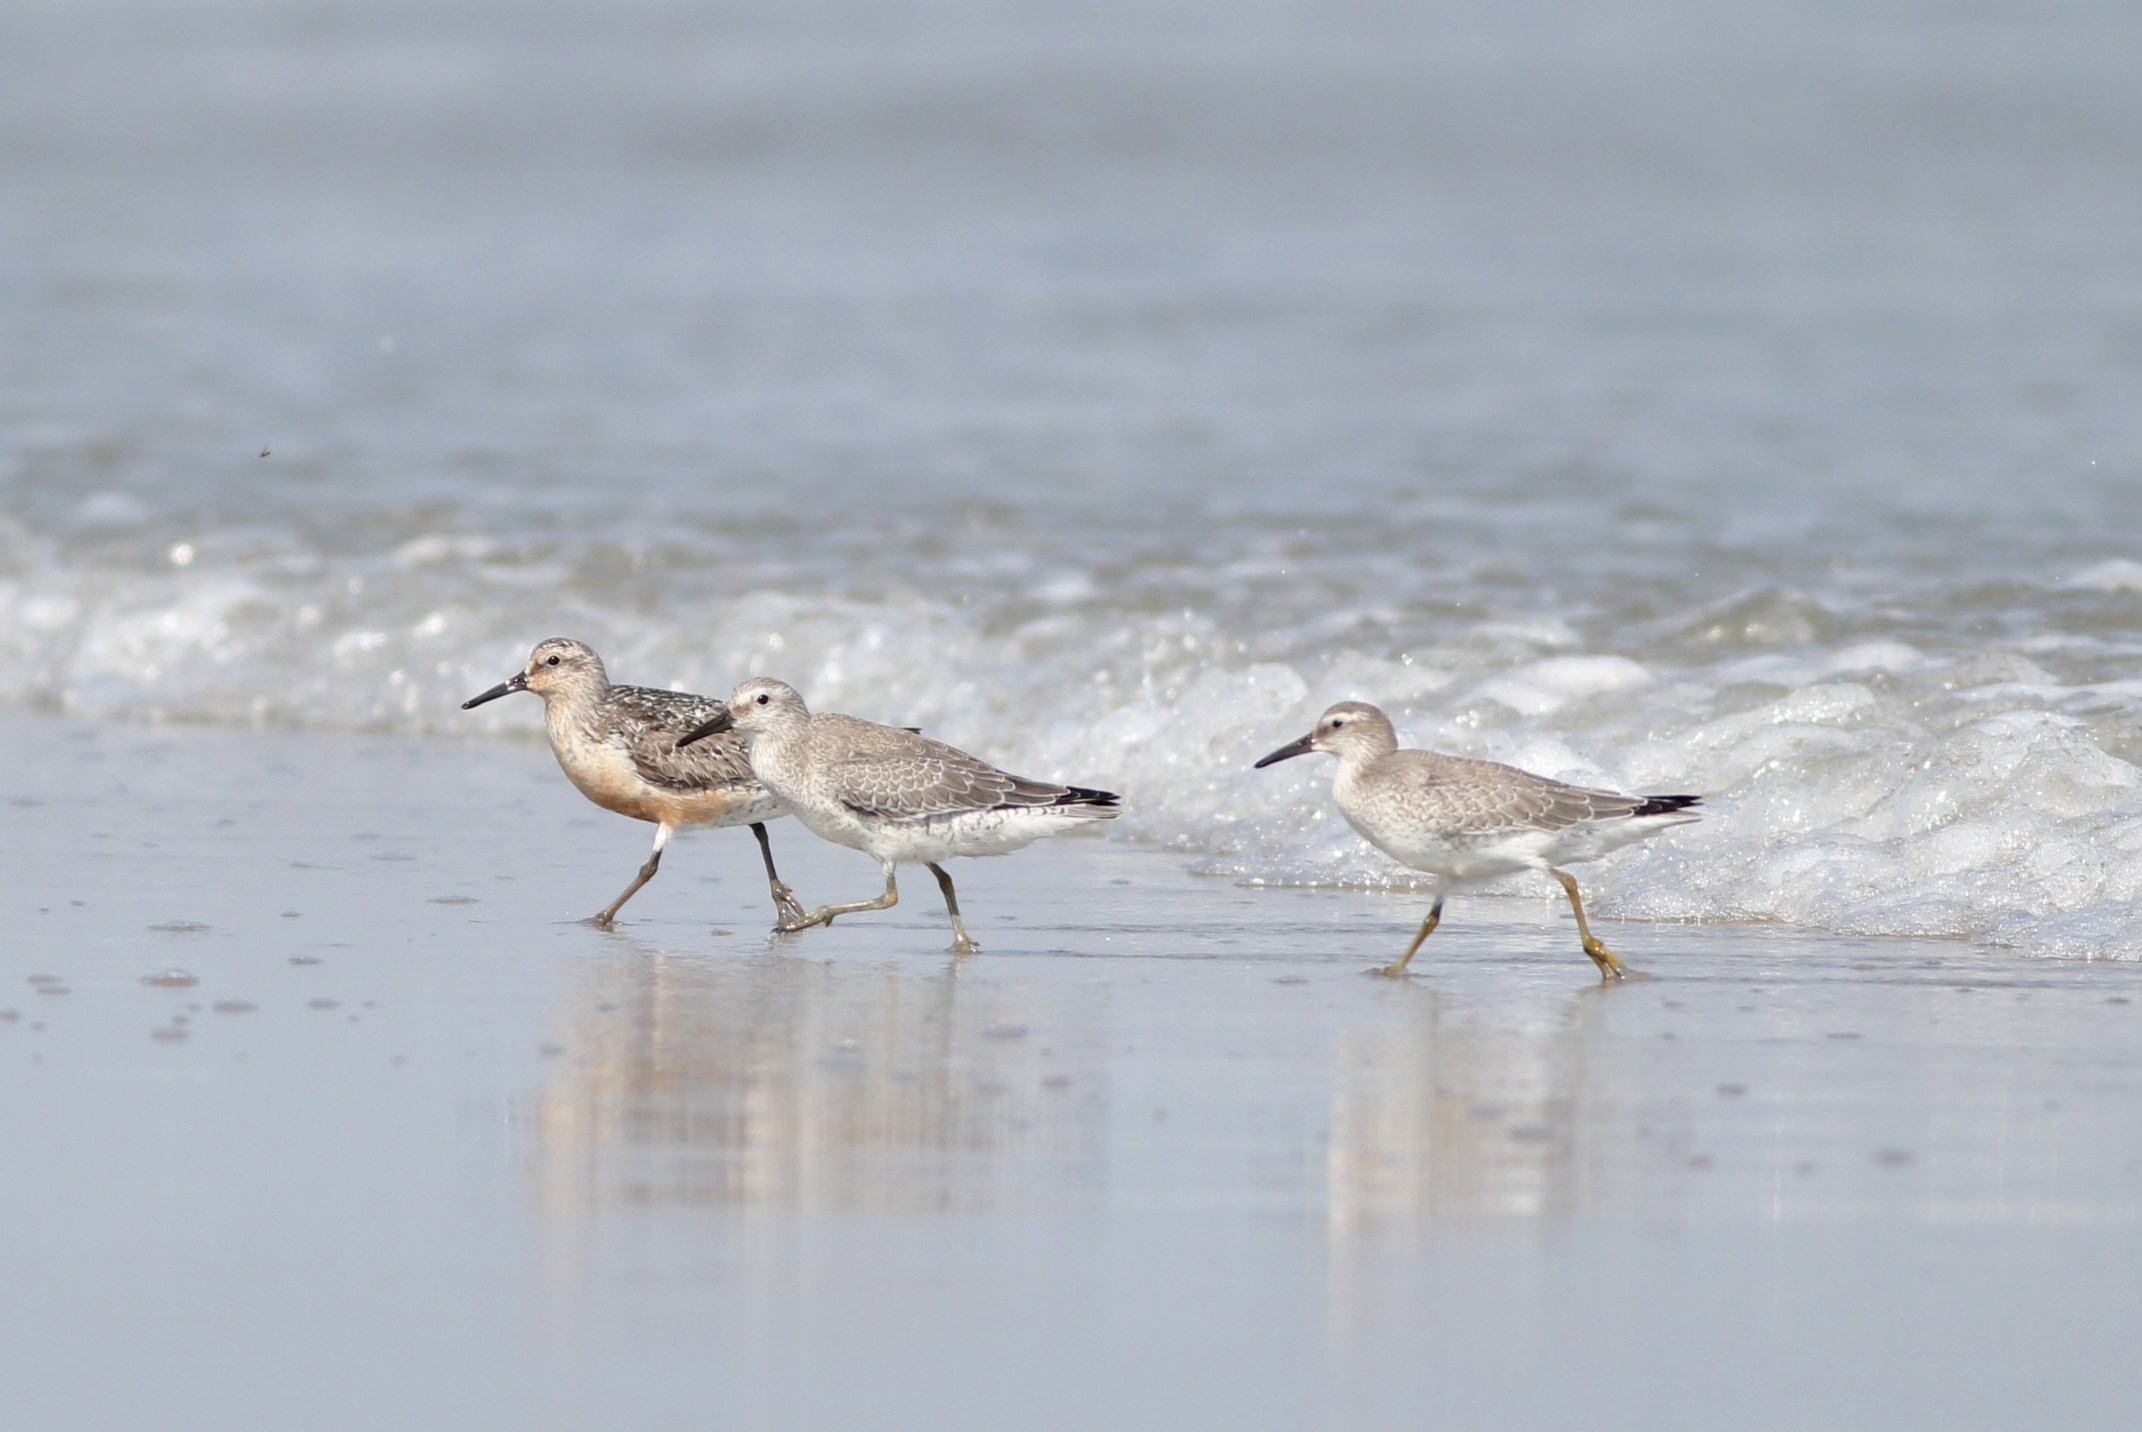 1 adult and 2 juvenile Red Knots on Stone Harbor Point (Photo by Alex Lamoreaux)